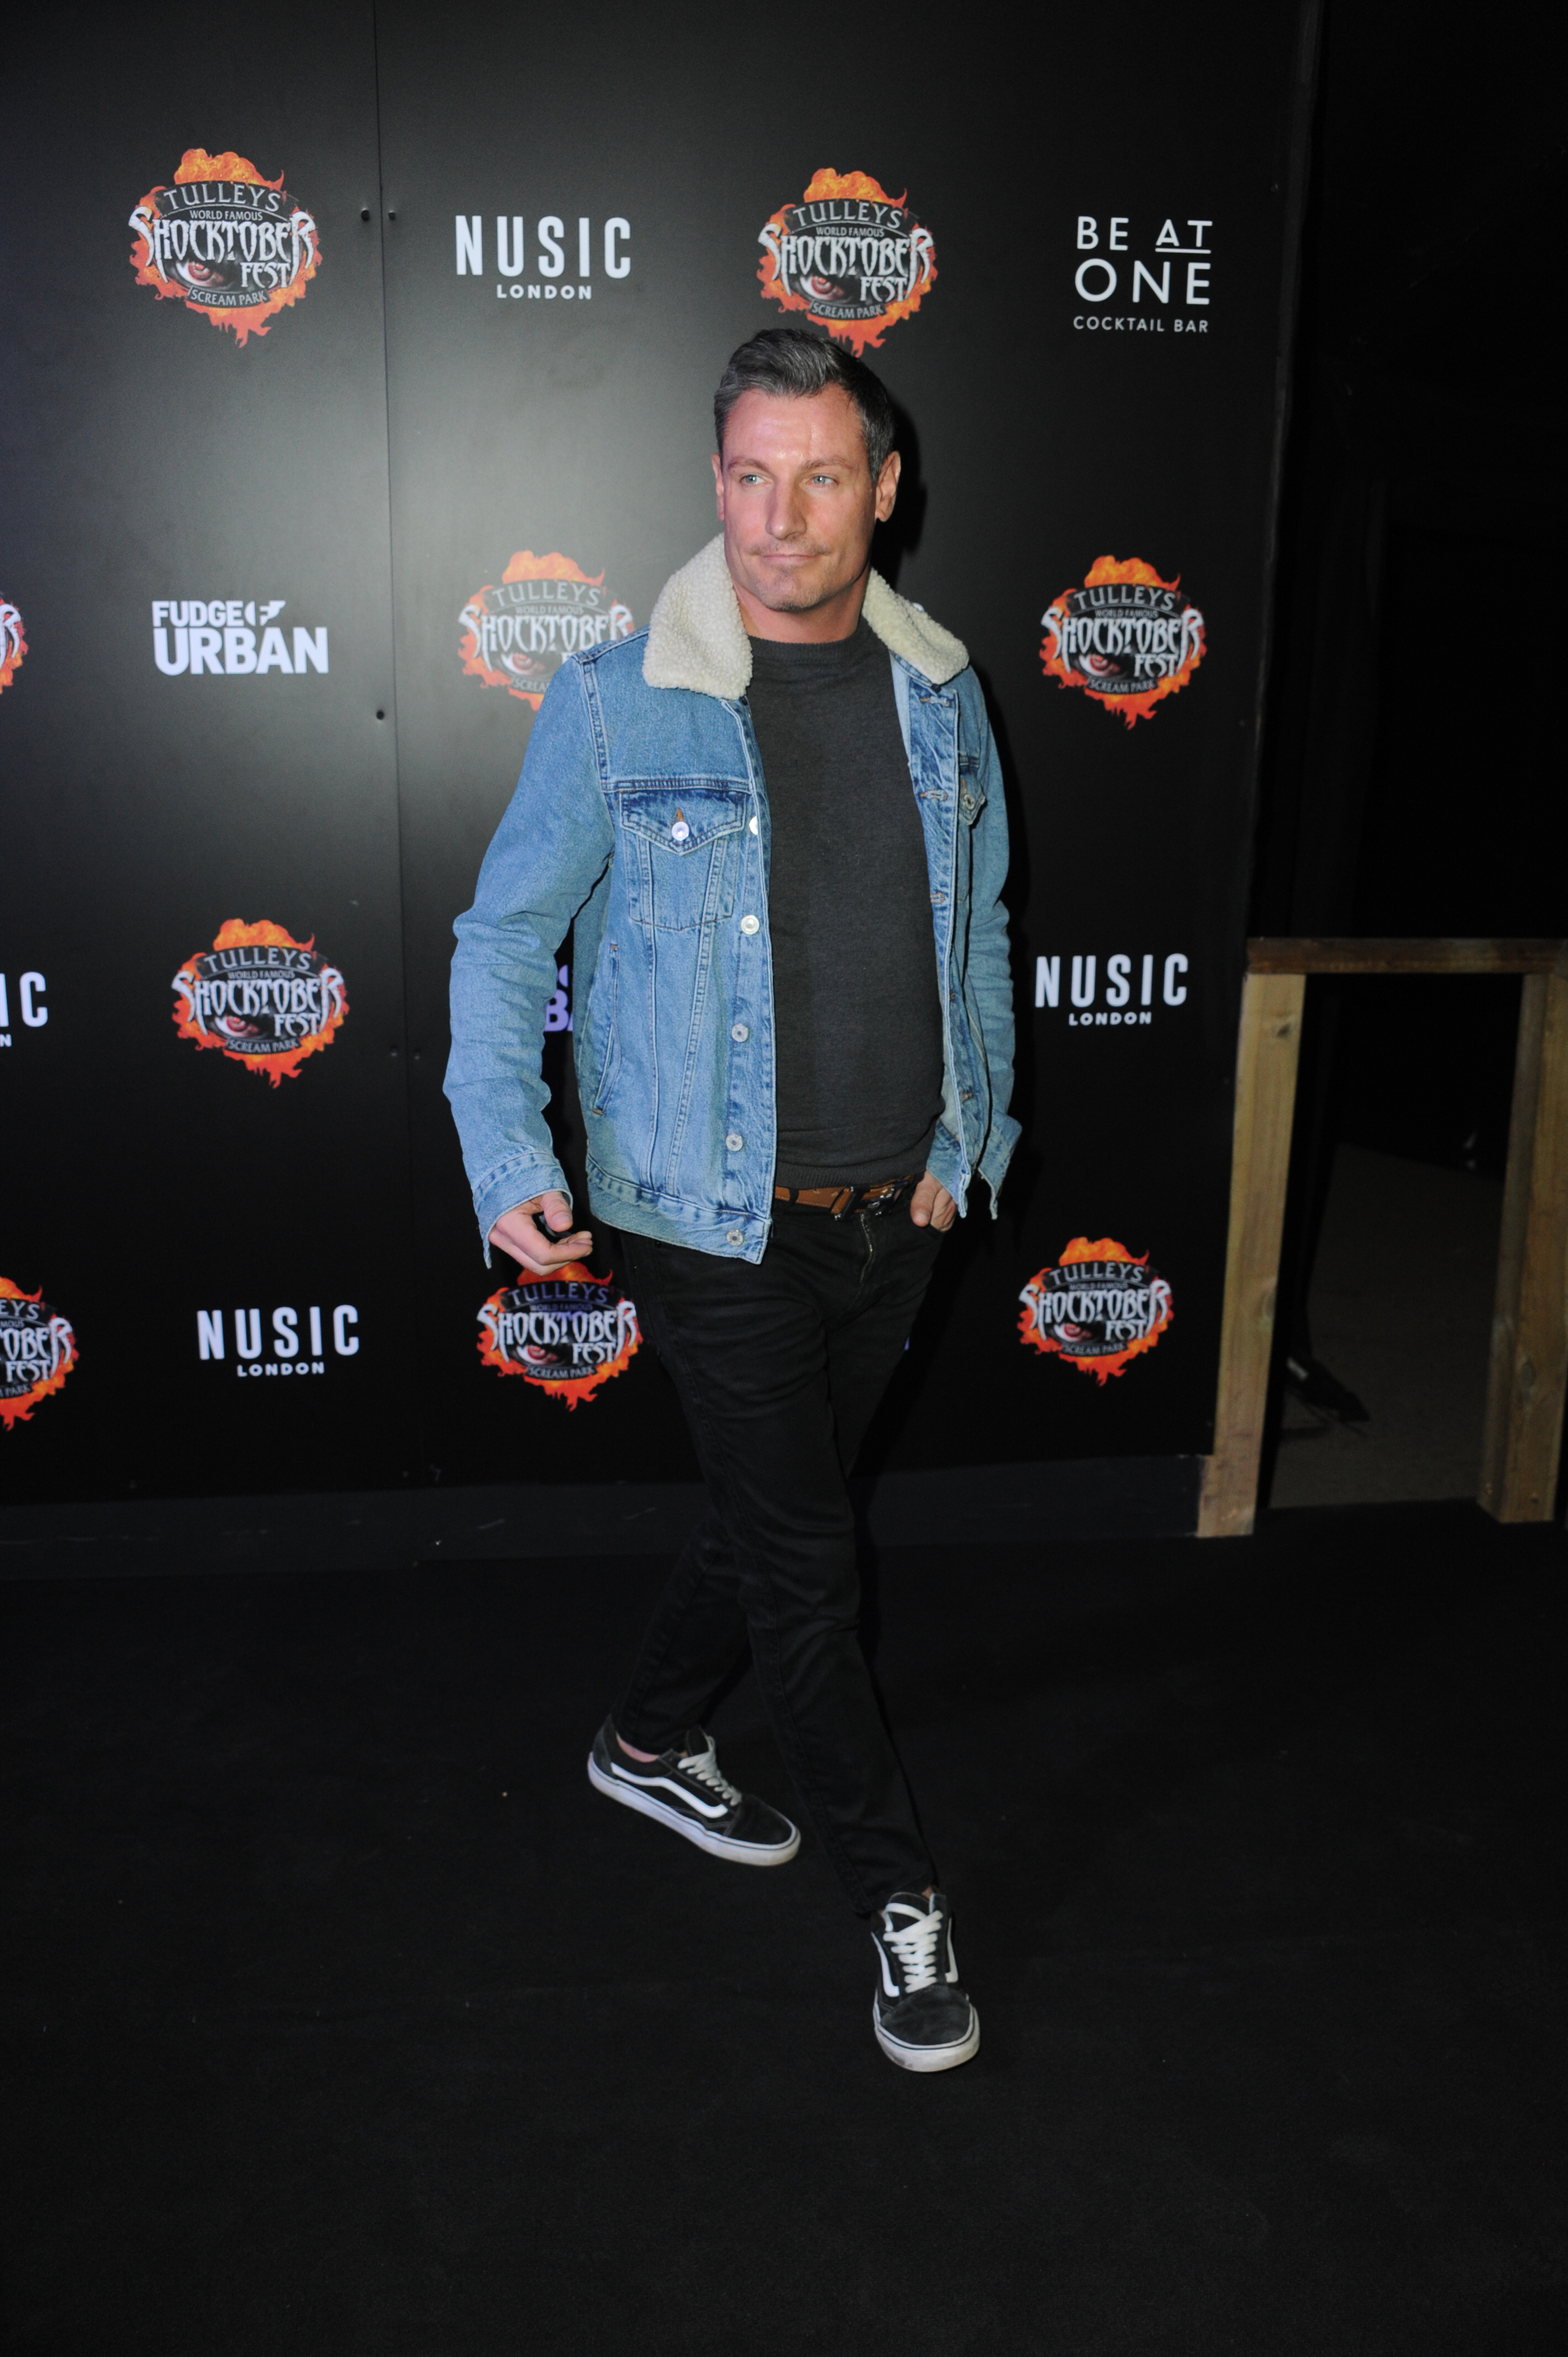 VIP night for Halloween scare park attraction at Tulleys Farm Crawley in London, UK. Pictured: Dean Gaffney Ref: SPL5031086 061018 NON-EXCLUSIVE Picture by: Terry Scott / SplashNews.com Splash News and Pictures Los Angeles: 310-821-2666 New York: 212-619-2666 London: 0207 644 7656 Milan: 02 4399 8577 photodesk@splashnews.com World Rights